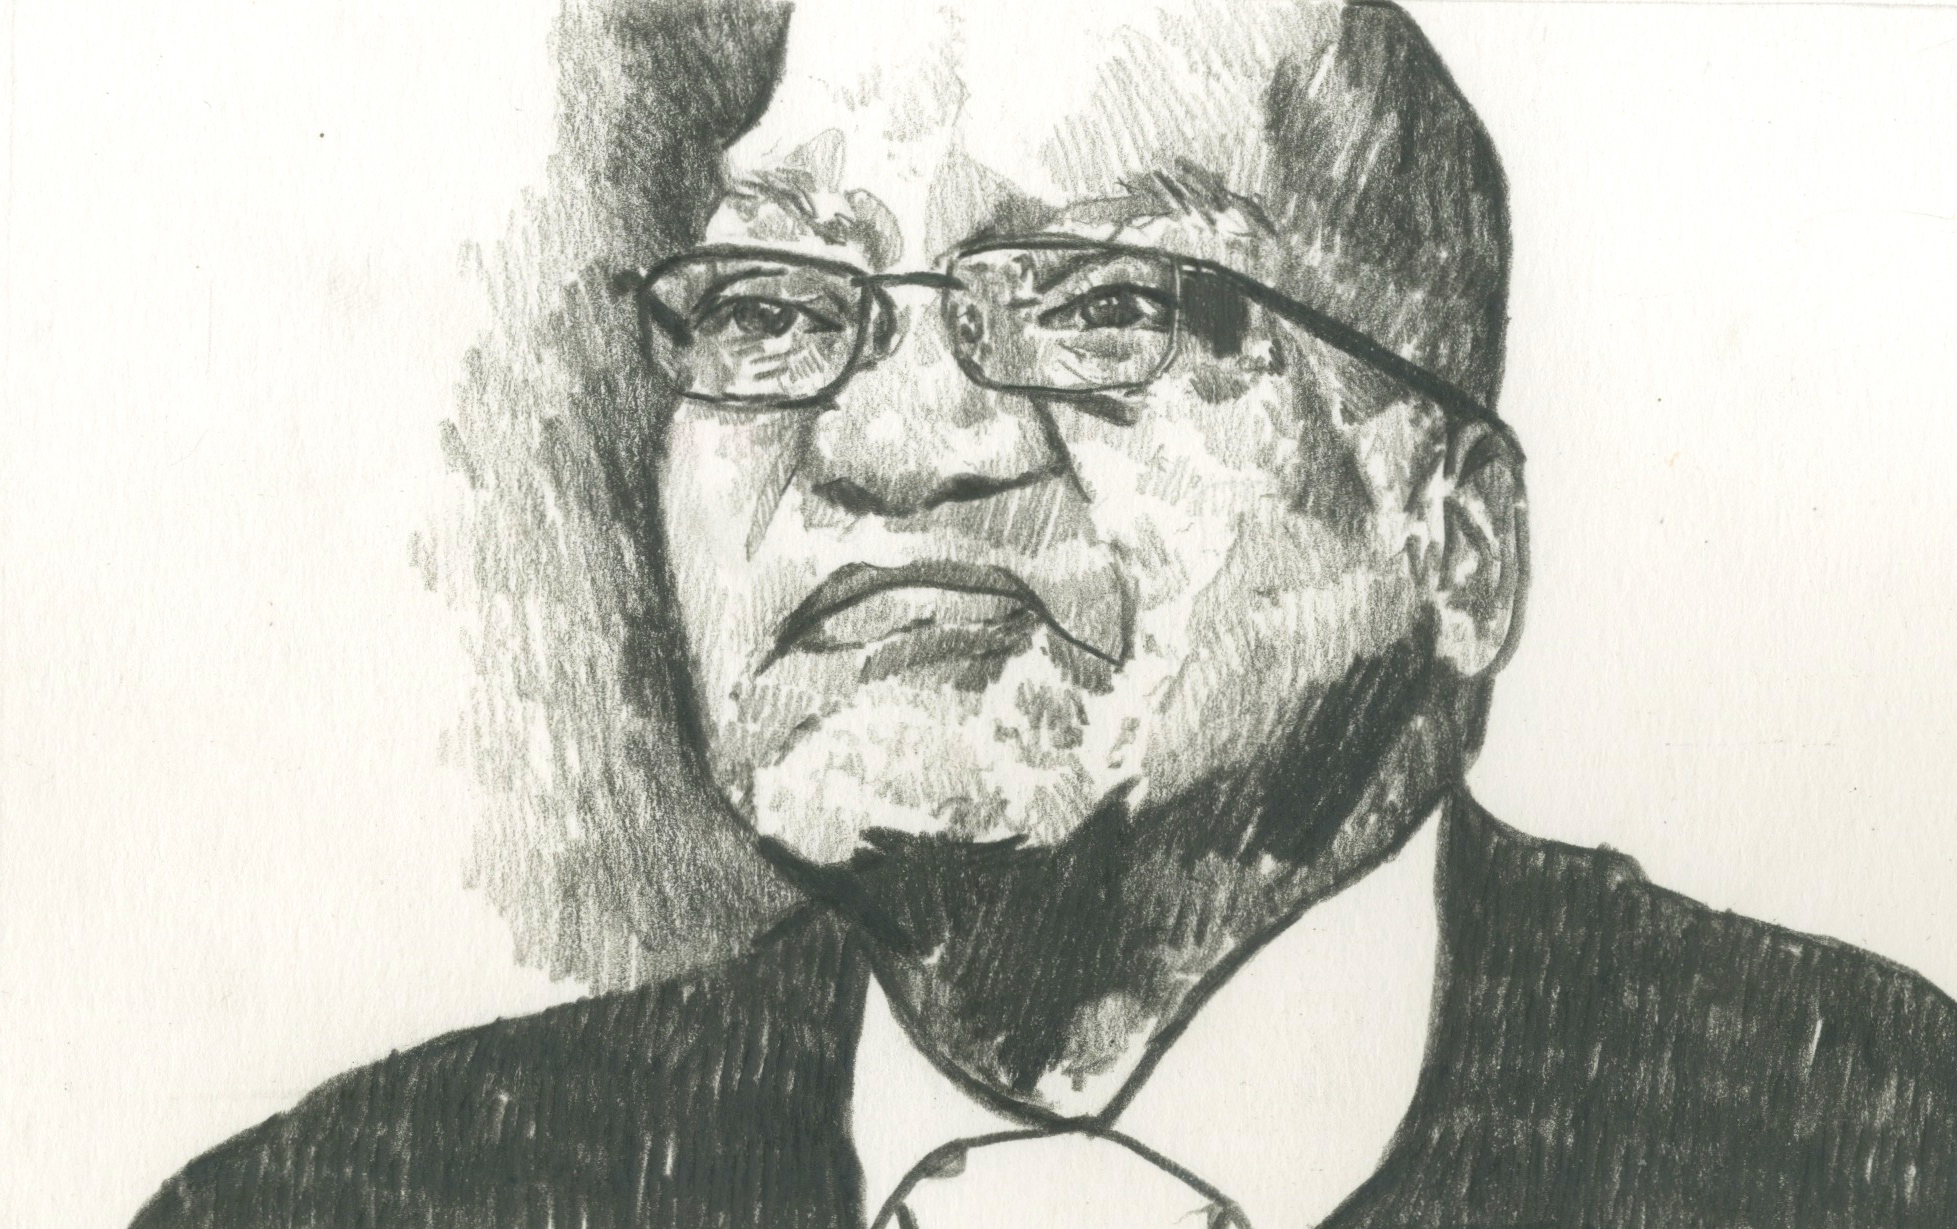 18/09/15 The president of South Africa Jacob Zuma is facing a campaign that will highlight allegations of corruption against him and his governing ANC party. He is accused of dodging corruption charges including those relating to the £11 million of state funds used to upgrade his private compound.